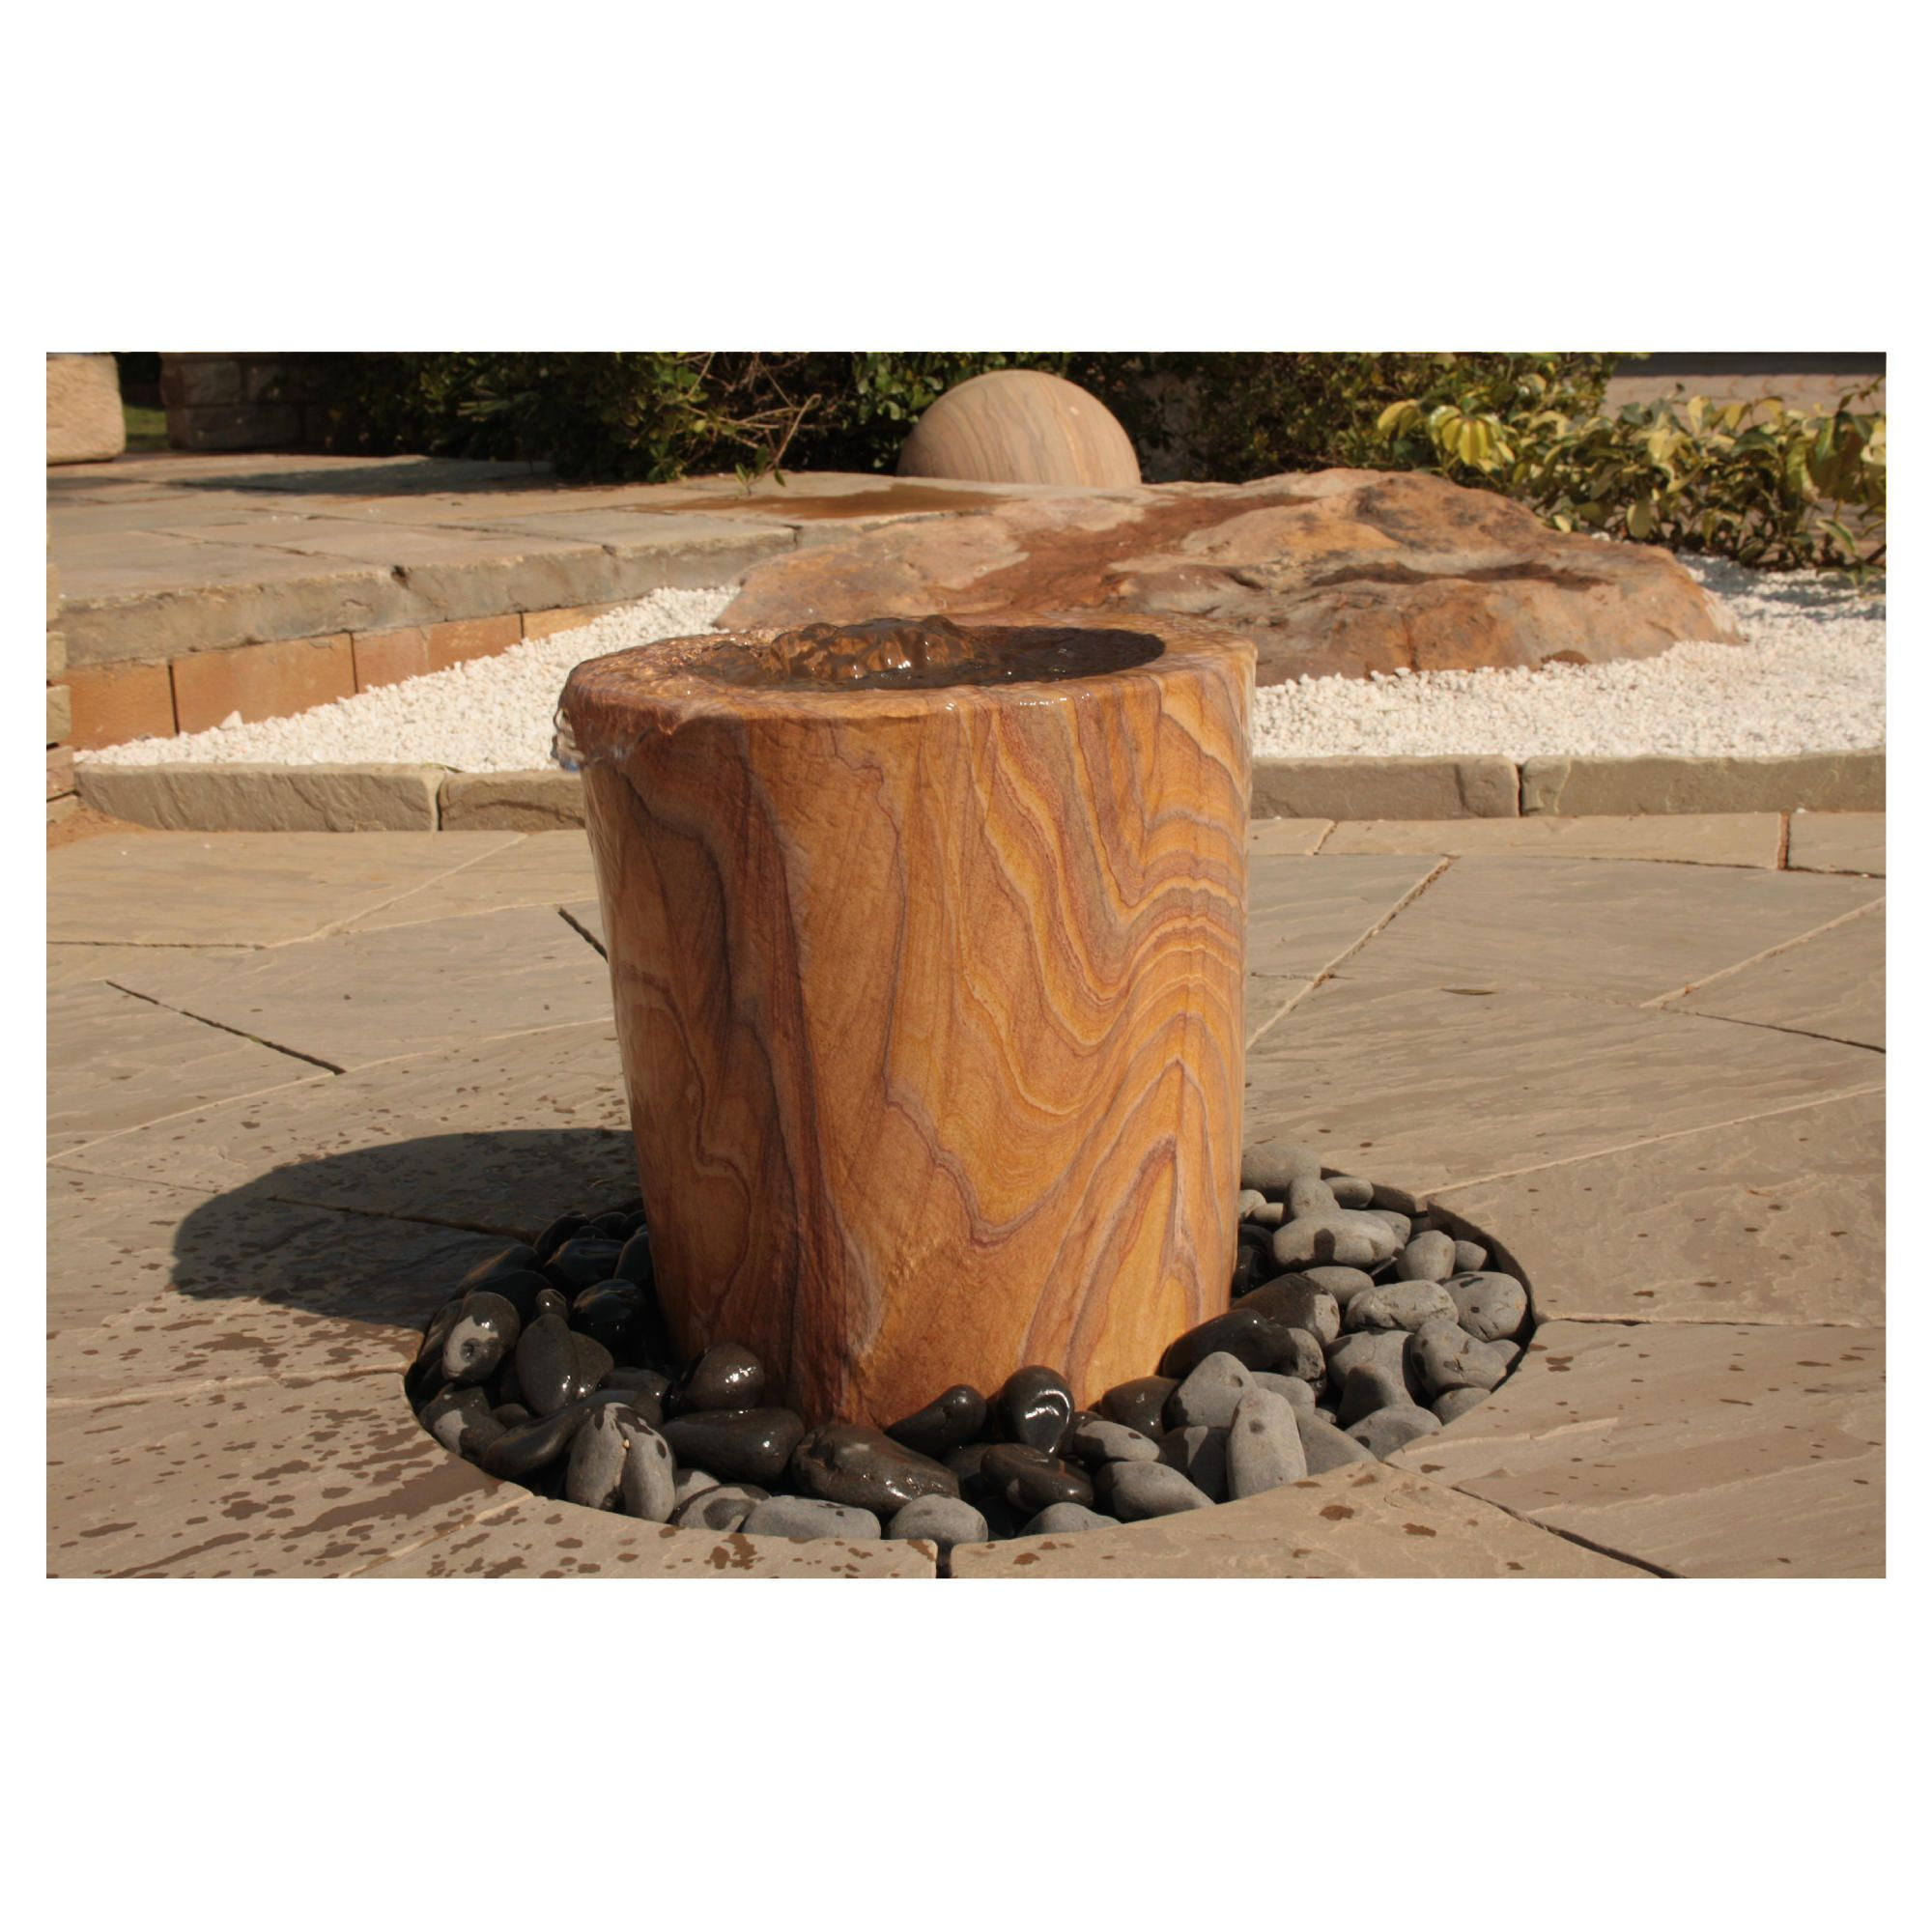 Pavo Rainbow Water Feature 60cm at Tesco Direct